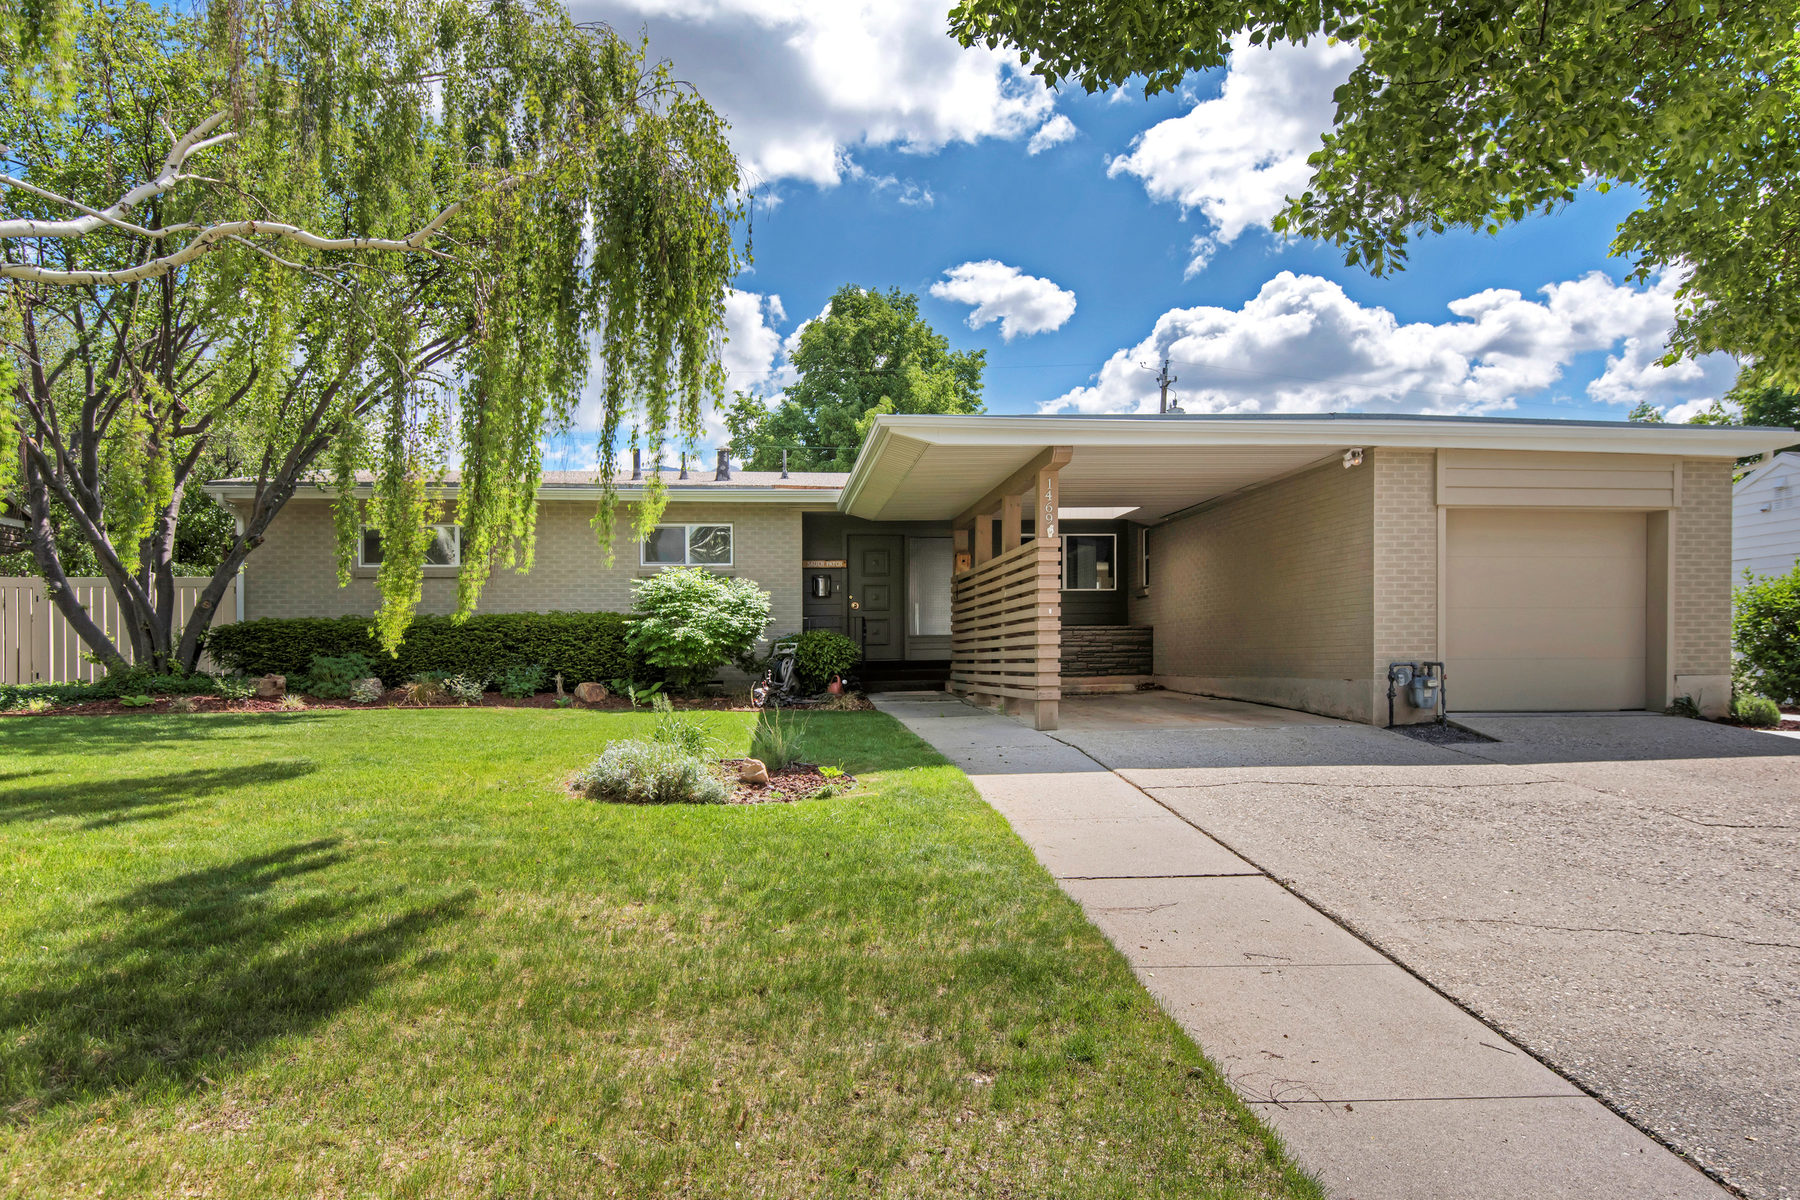 Single Family Home for Sale at Classic Style with Modern Twist 1469 S Yuma Salt Lake City, Utah, 84108 United States